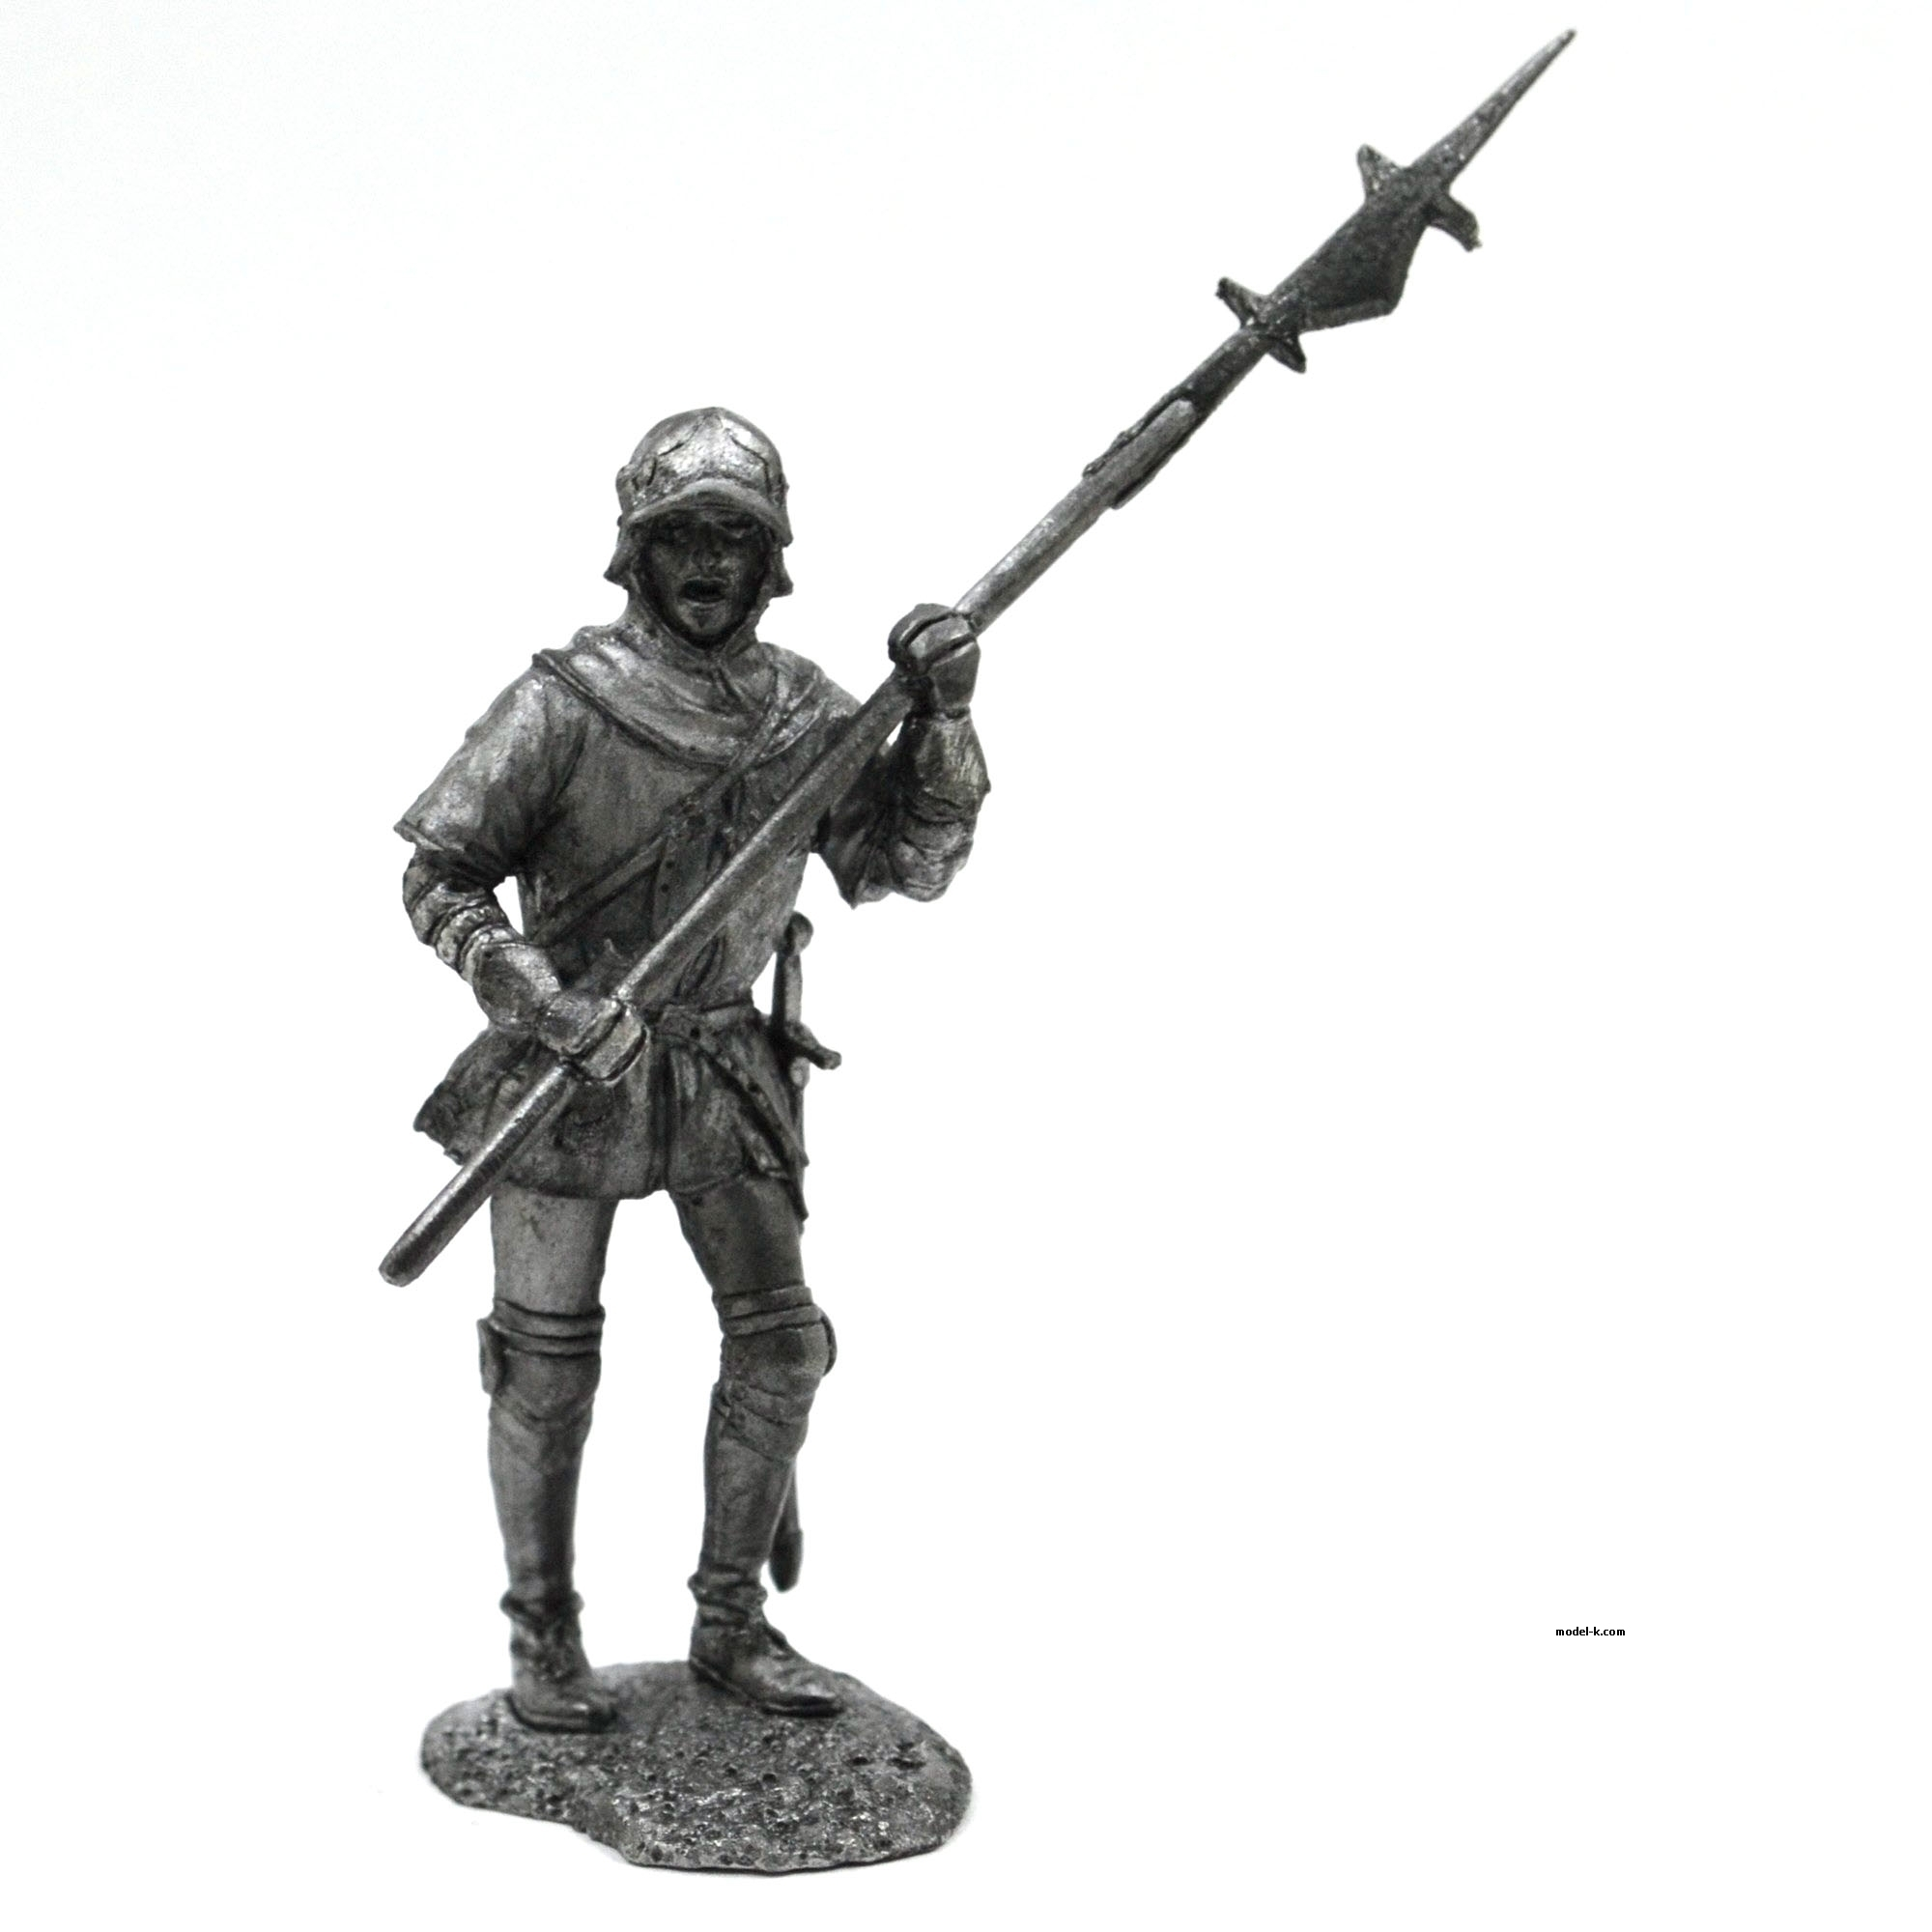 English Infantryman 1:32 scale warrior